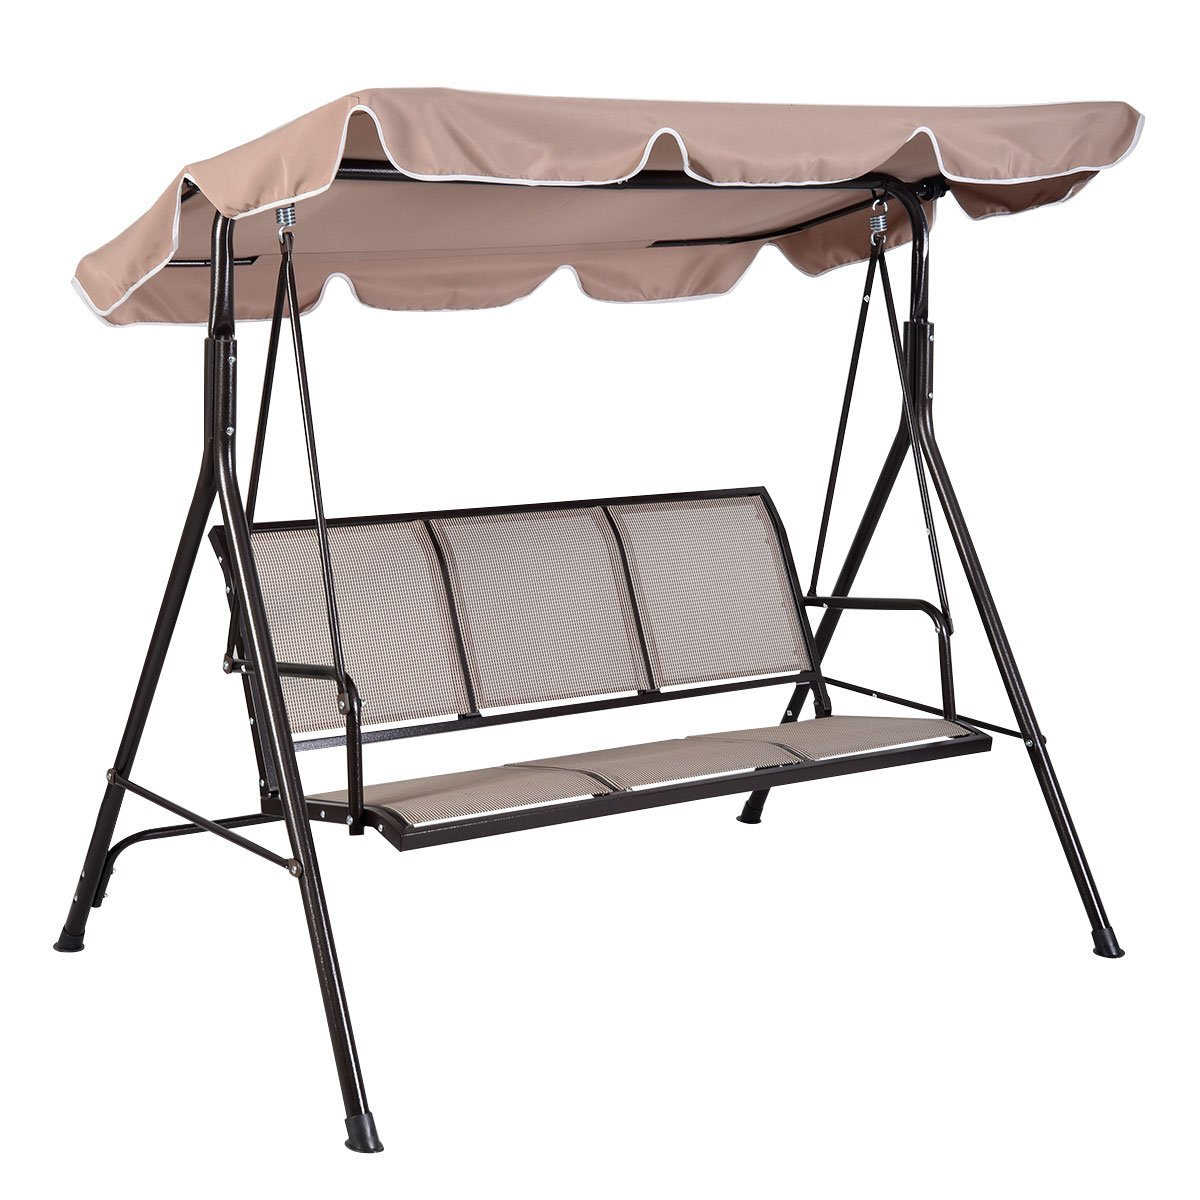 Amazon.com : Giantex 3 Person Outdoor Patio Swing Canopy Awning Yard  Furniture Hammock Steel Beige : Garden U0026 Outdoor